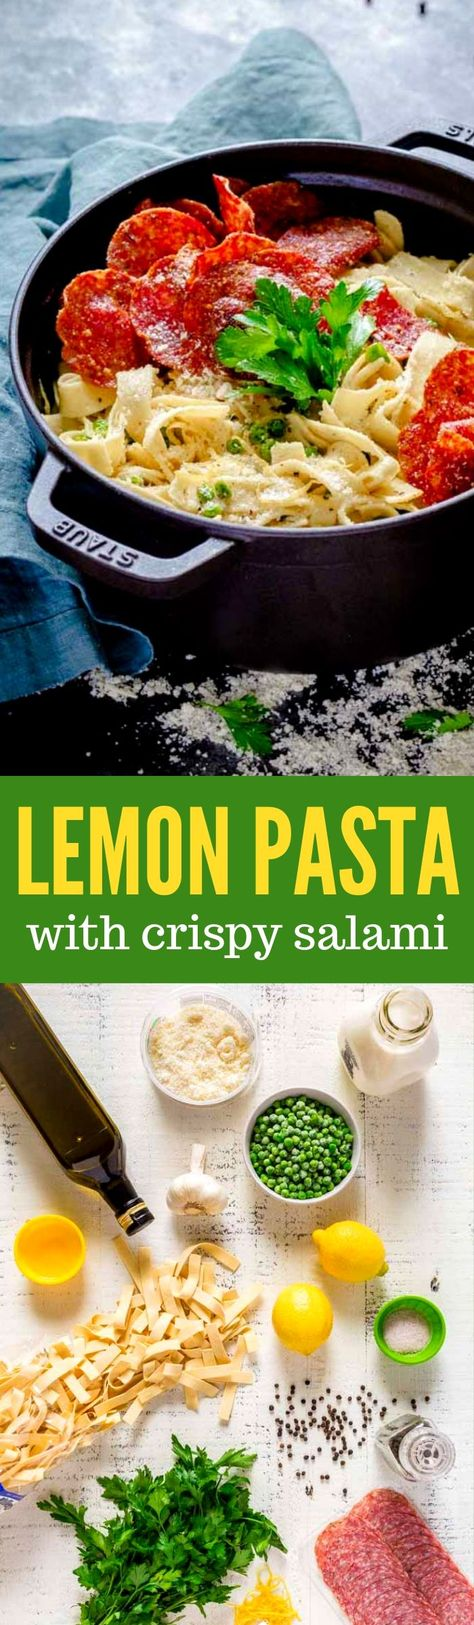 LEMON PASTA WITH CRISPY SALAMI is a family favorite! A scrumptious, creamy pasta sauce makes this Italian recipe extra special. This dish begins with wide noodles and a luscious lemon cream sauce. The crispy salami is a delightfully unexpected touch. Make this easy pasta recipe in 30 minutes! #easypastarecipes #Italianrecipes #lemonpasta #pastarecipe # creamypastasauce #pasta #salami #peas